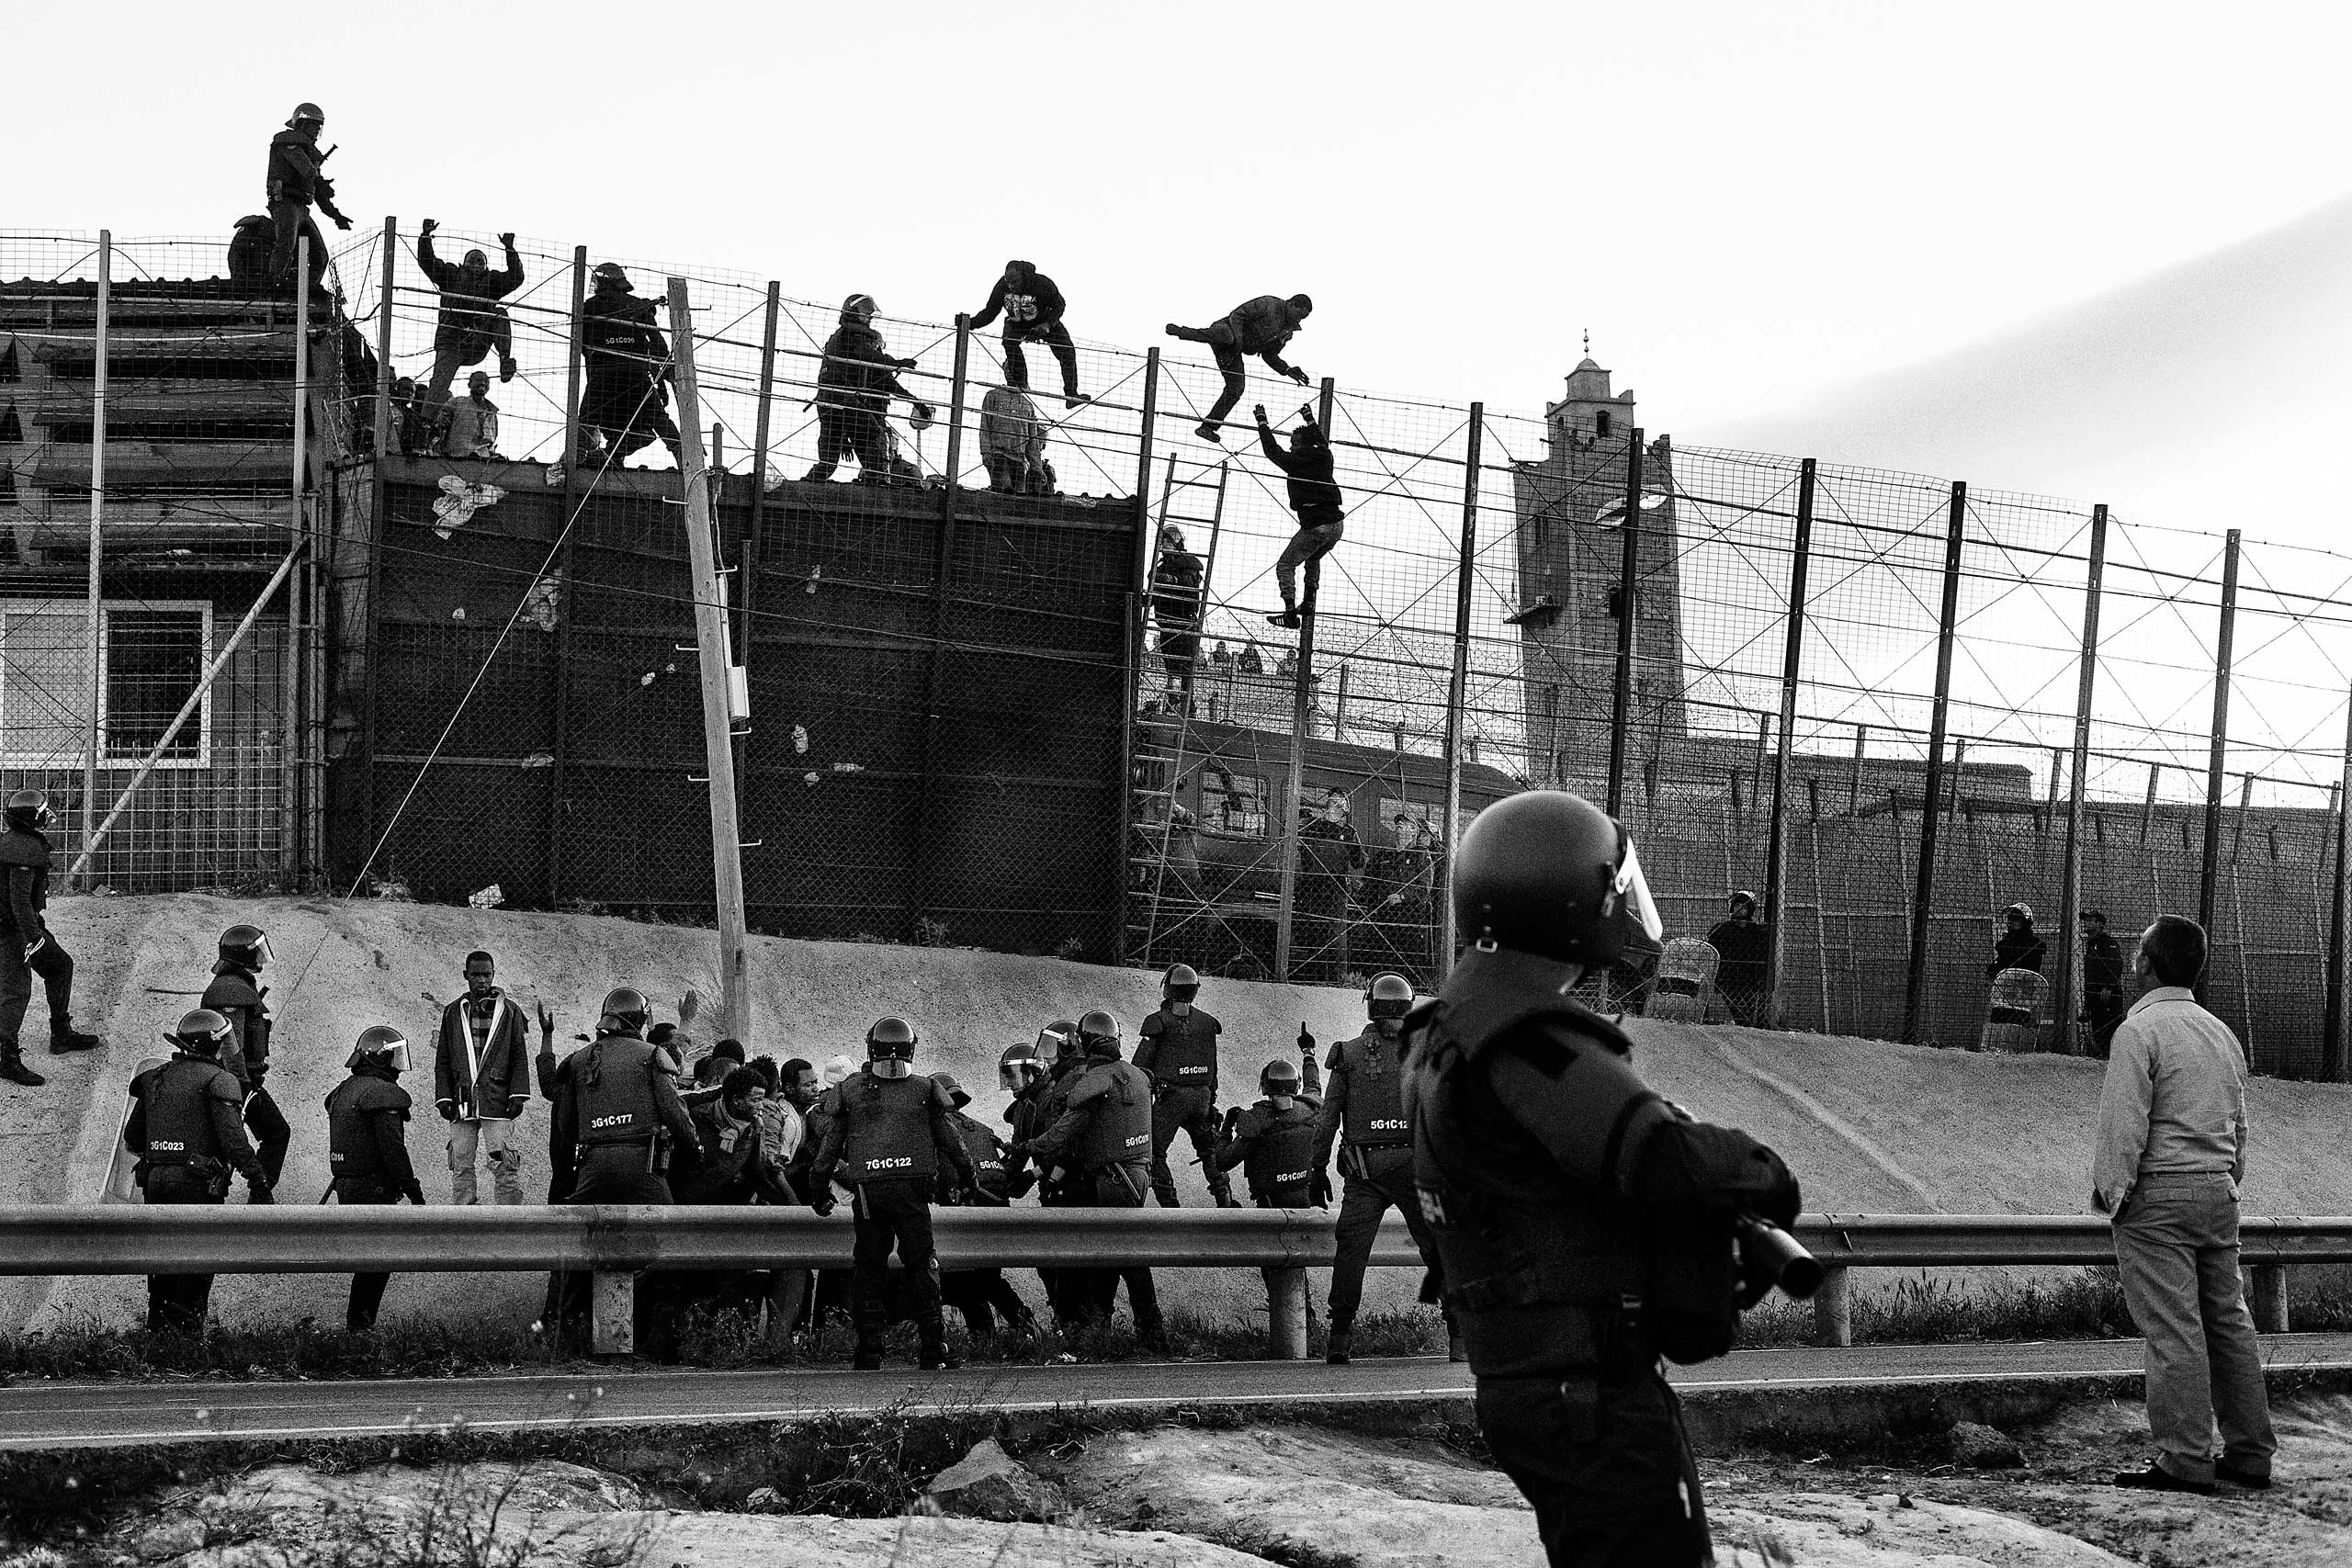 Sub-Saharan migrants  try to cross the border fence between Morocco and Melilla in 2014.